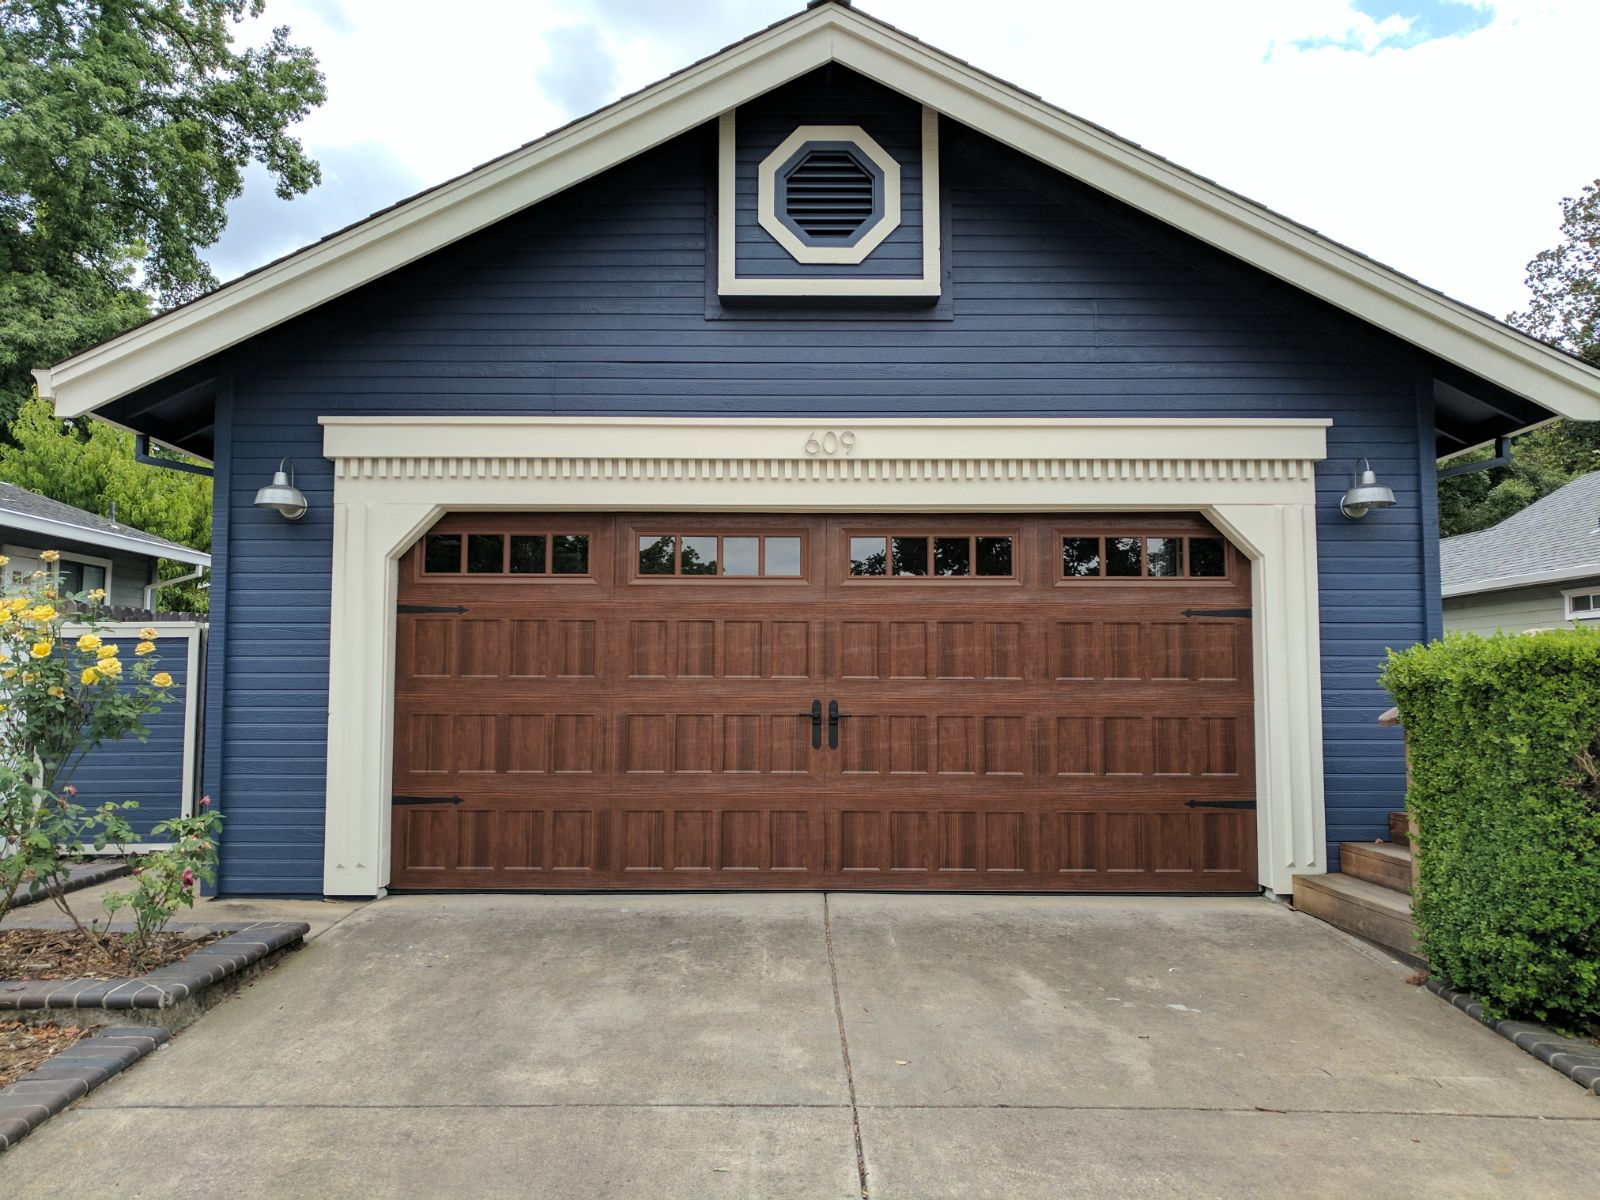 Oak summit 1000 garage doors by amarr sugar land garage for Garage doors